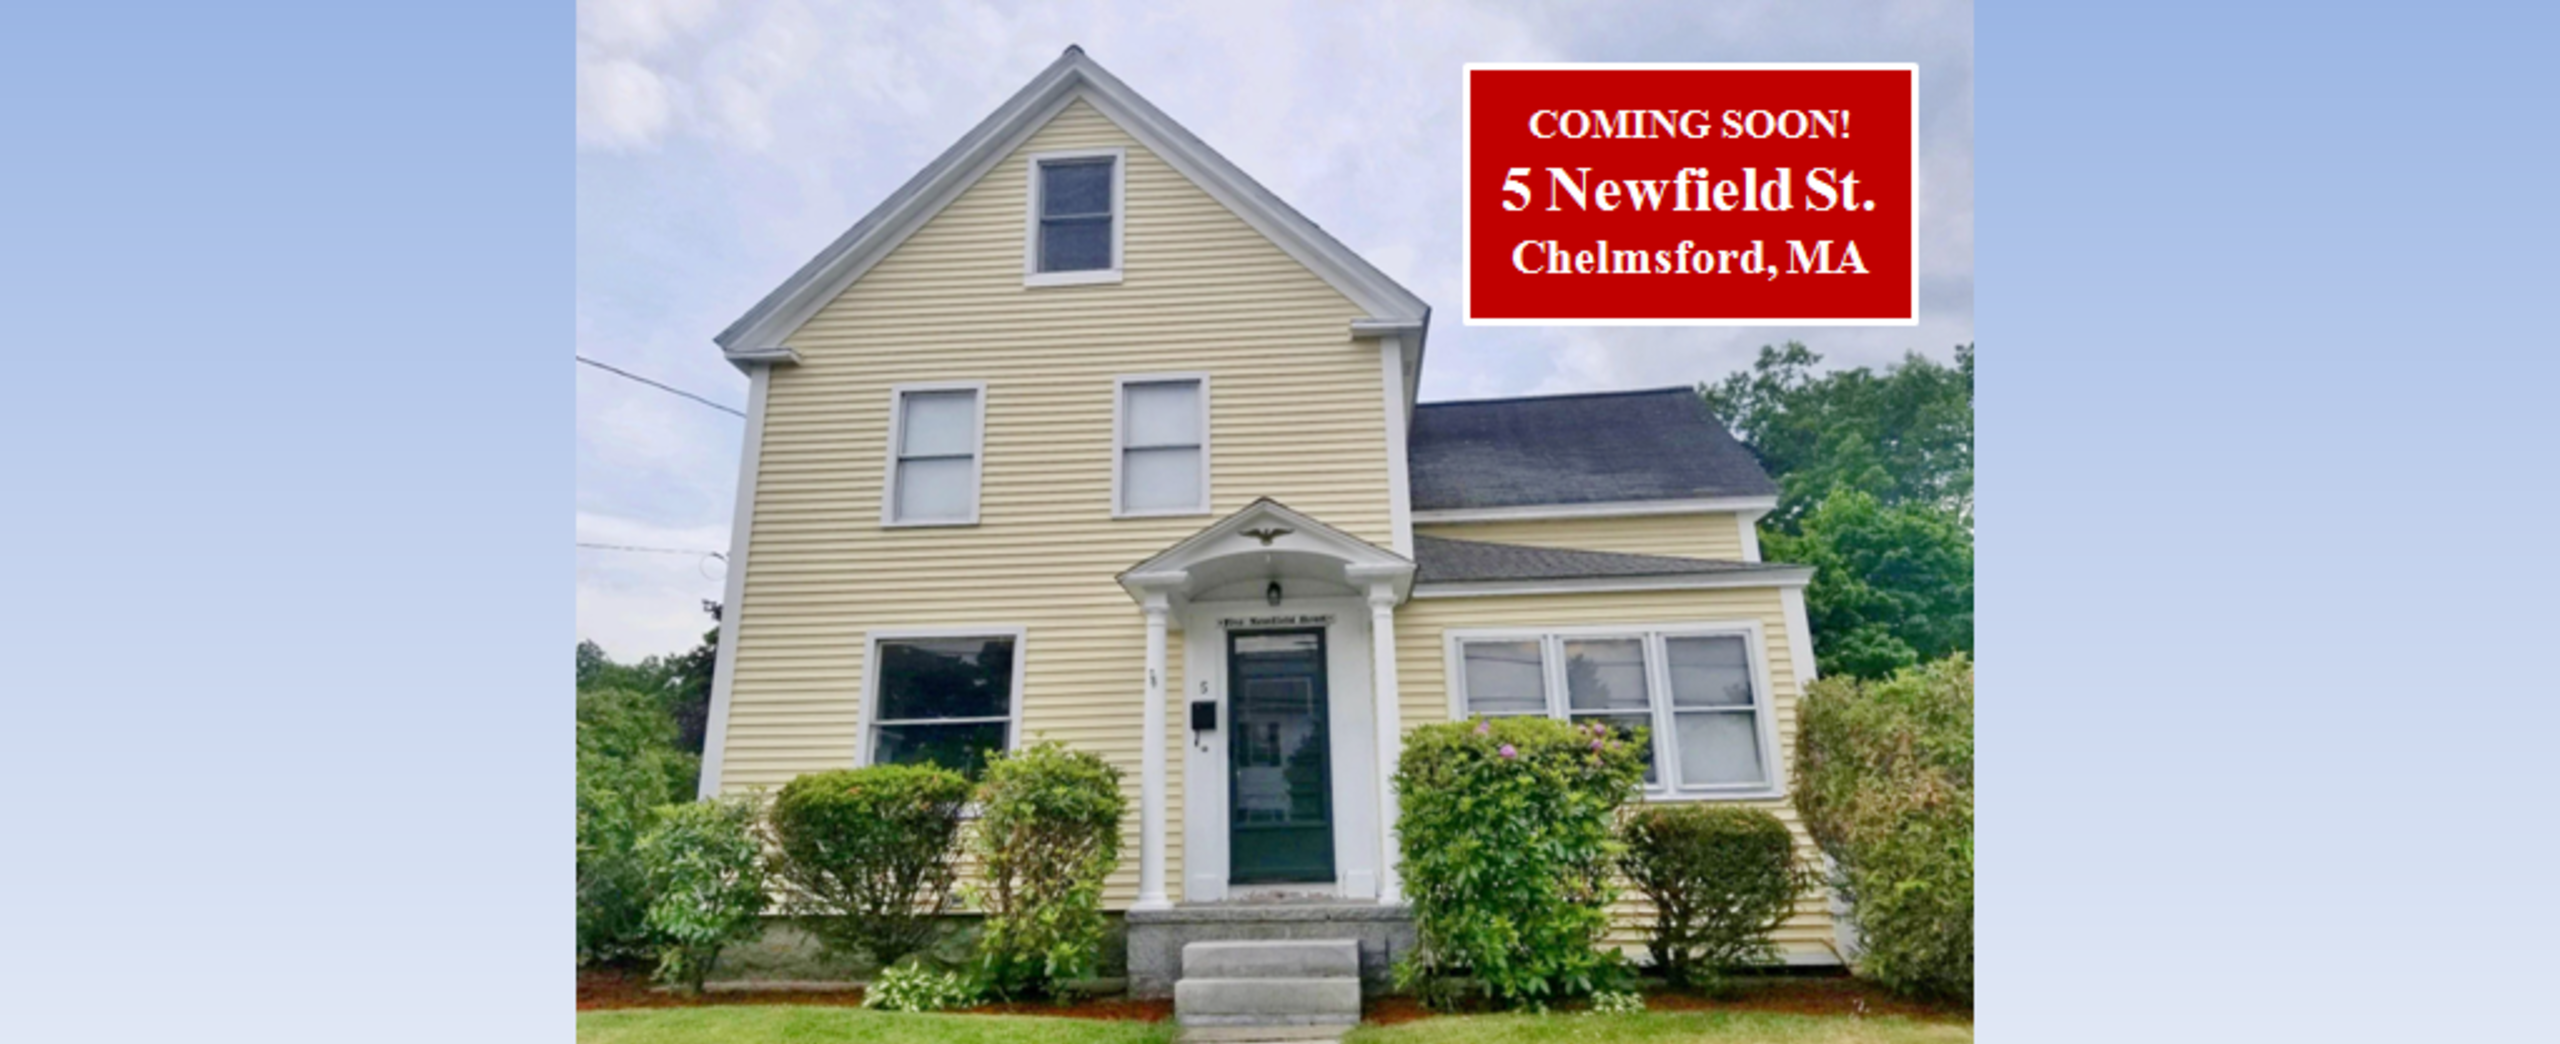 COMING SOON - 5 NEWFIELD ST, CHELMSFORD, MA 01863